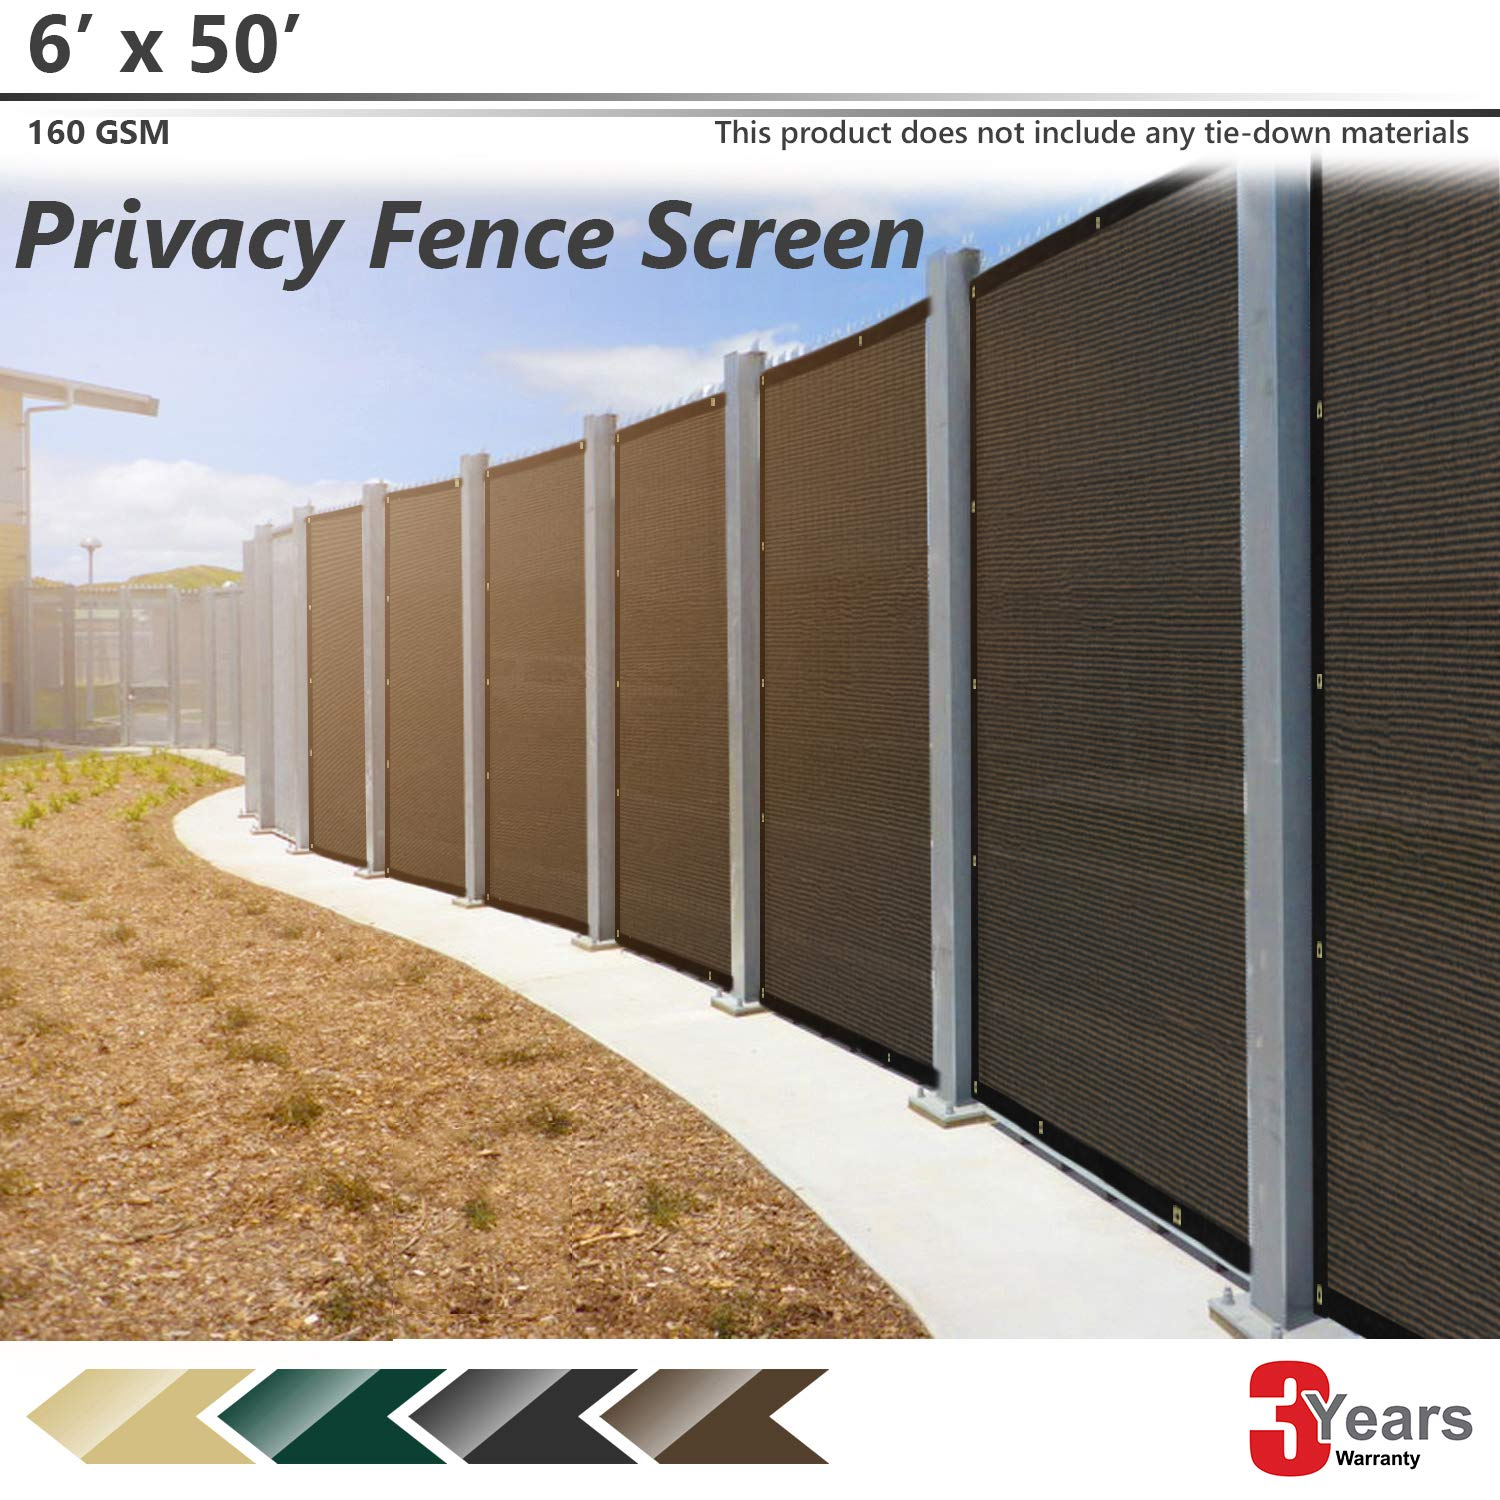 BOUYA Brown Privacy Fence Screen 6' x 50' Heavy Duty for Chain-Link Fence Privacy Screen Commercial Outdoor Shade Windscreen Mesh Fabric with Brass Gromment 160 GSM 88% Blockage UV -3 Years Warranty by BOUYA